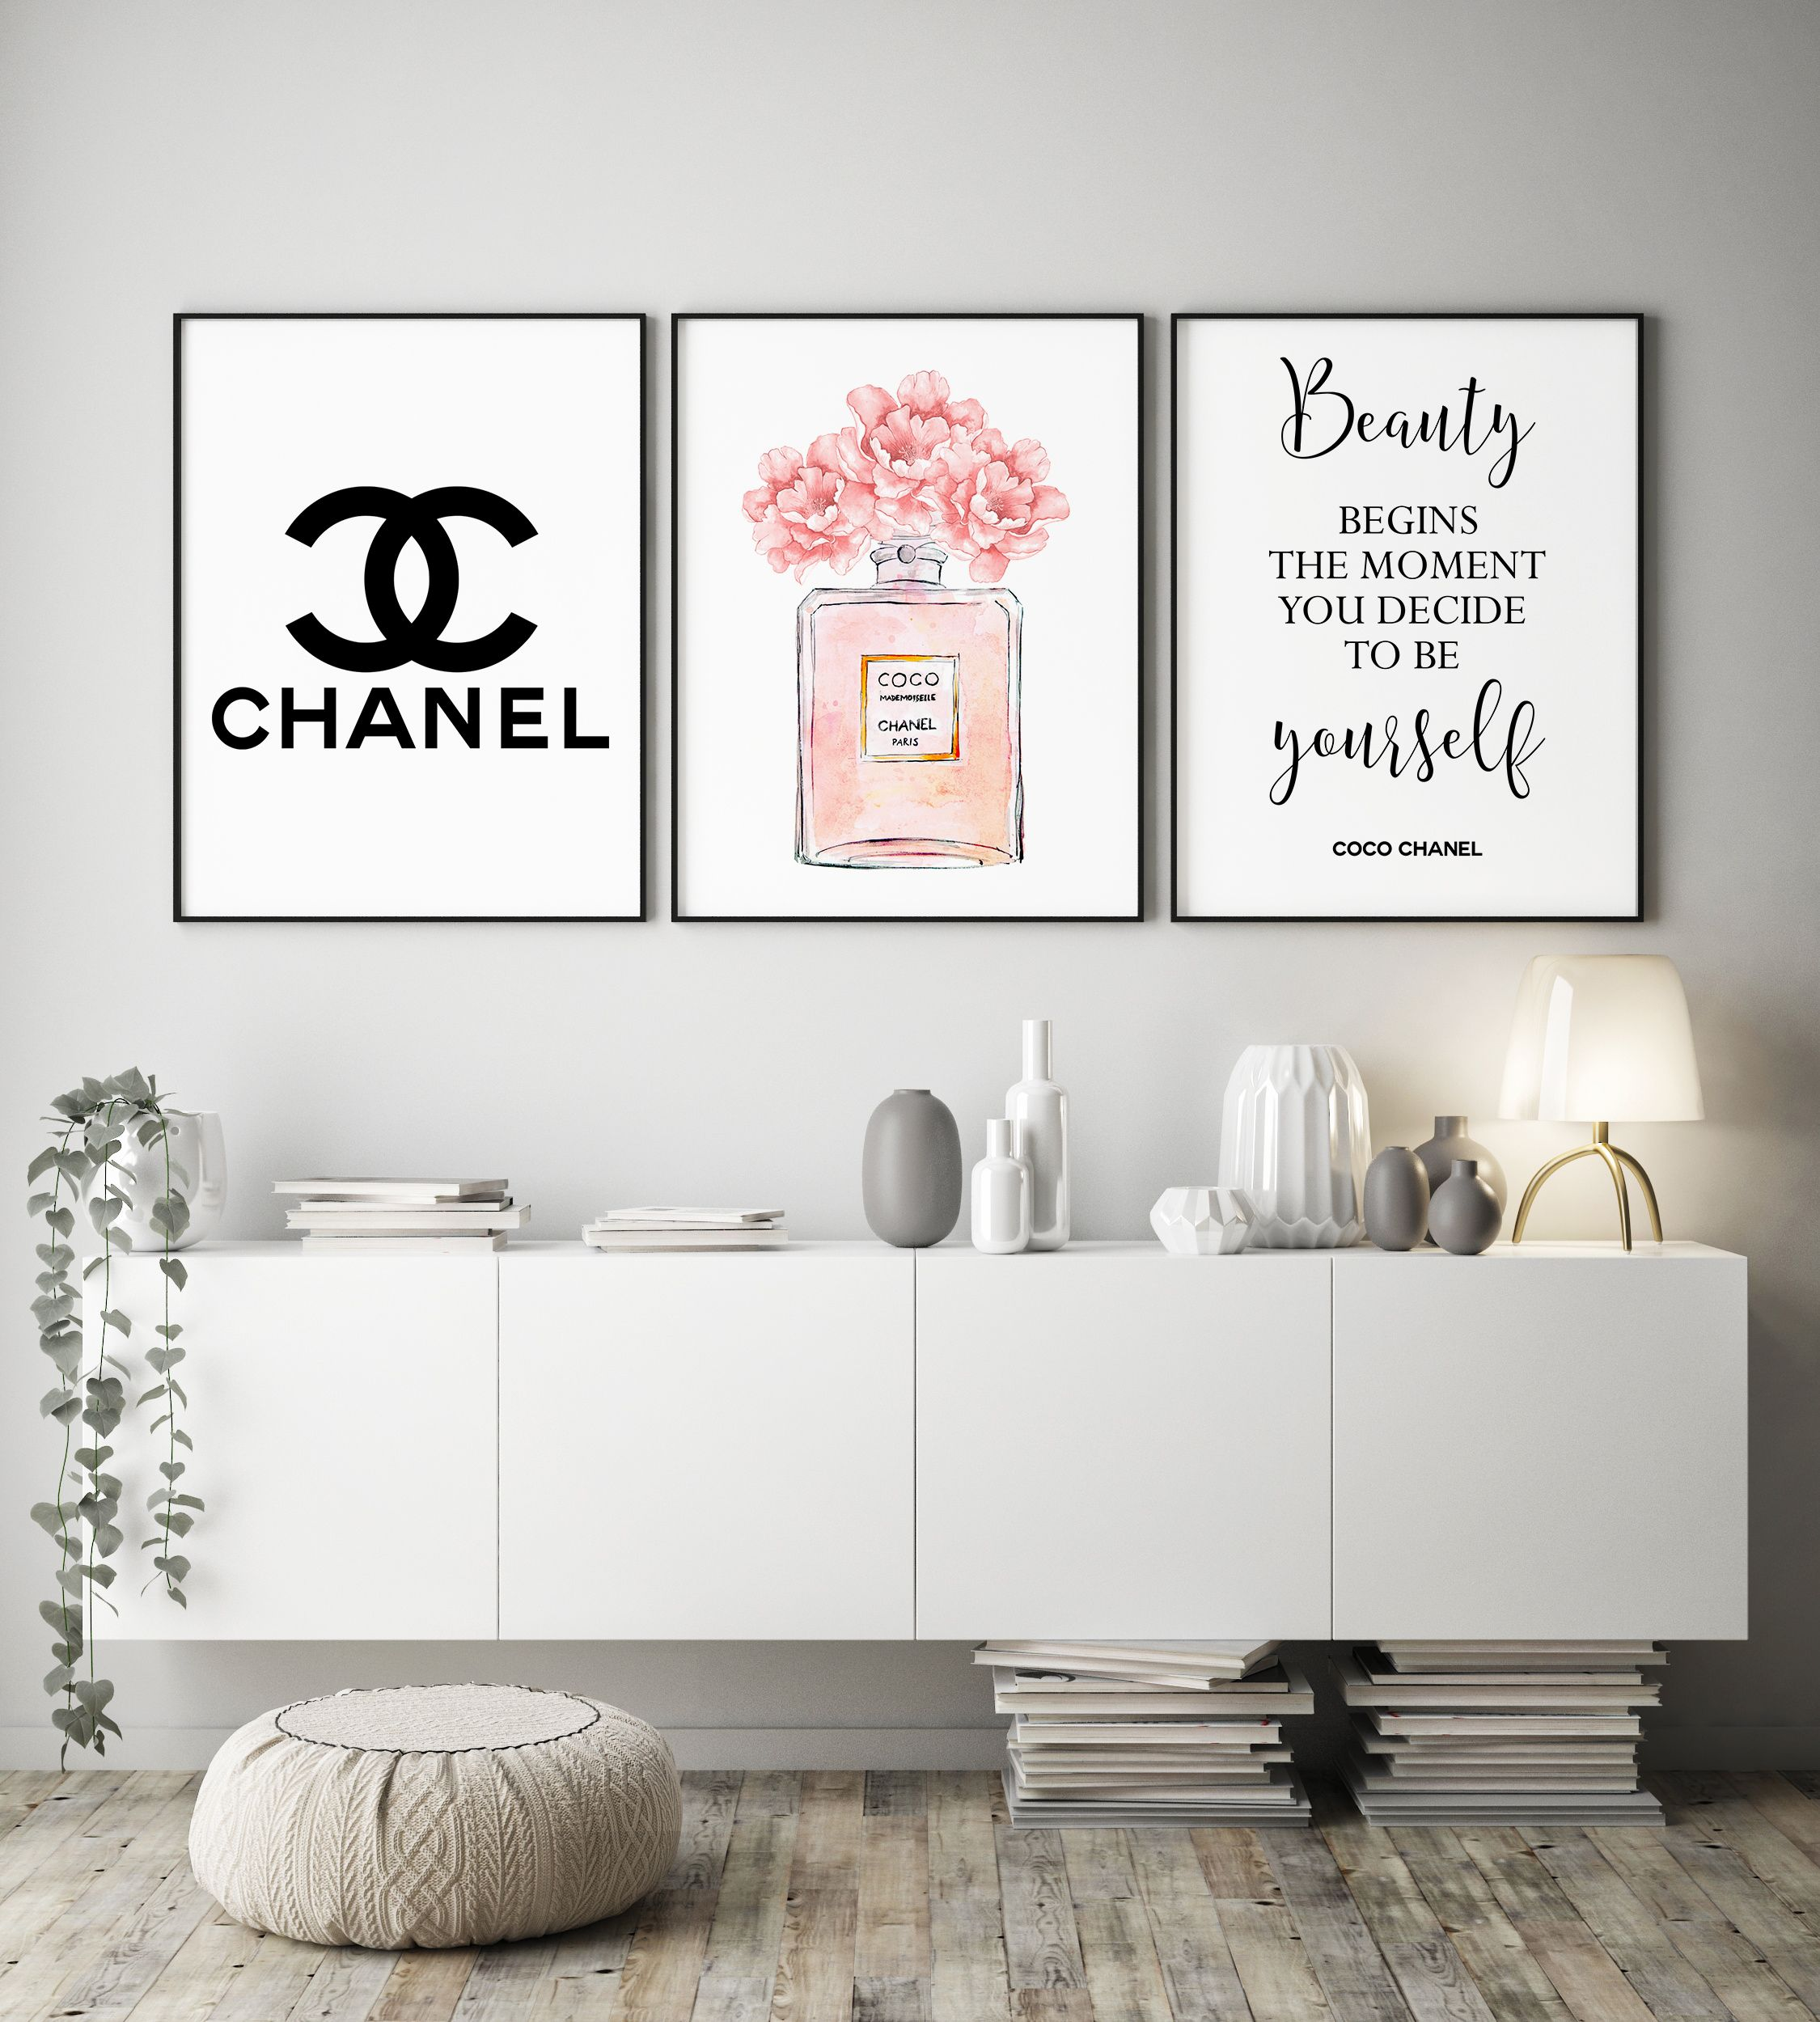 Pin By Lily Collier On Room Goals Gold Room Decor Rose Gold Room Decor Wall Decor Bedroom